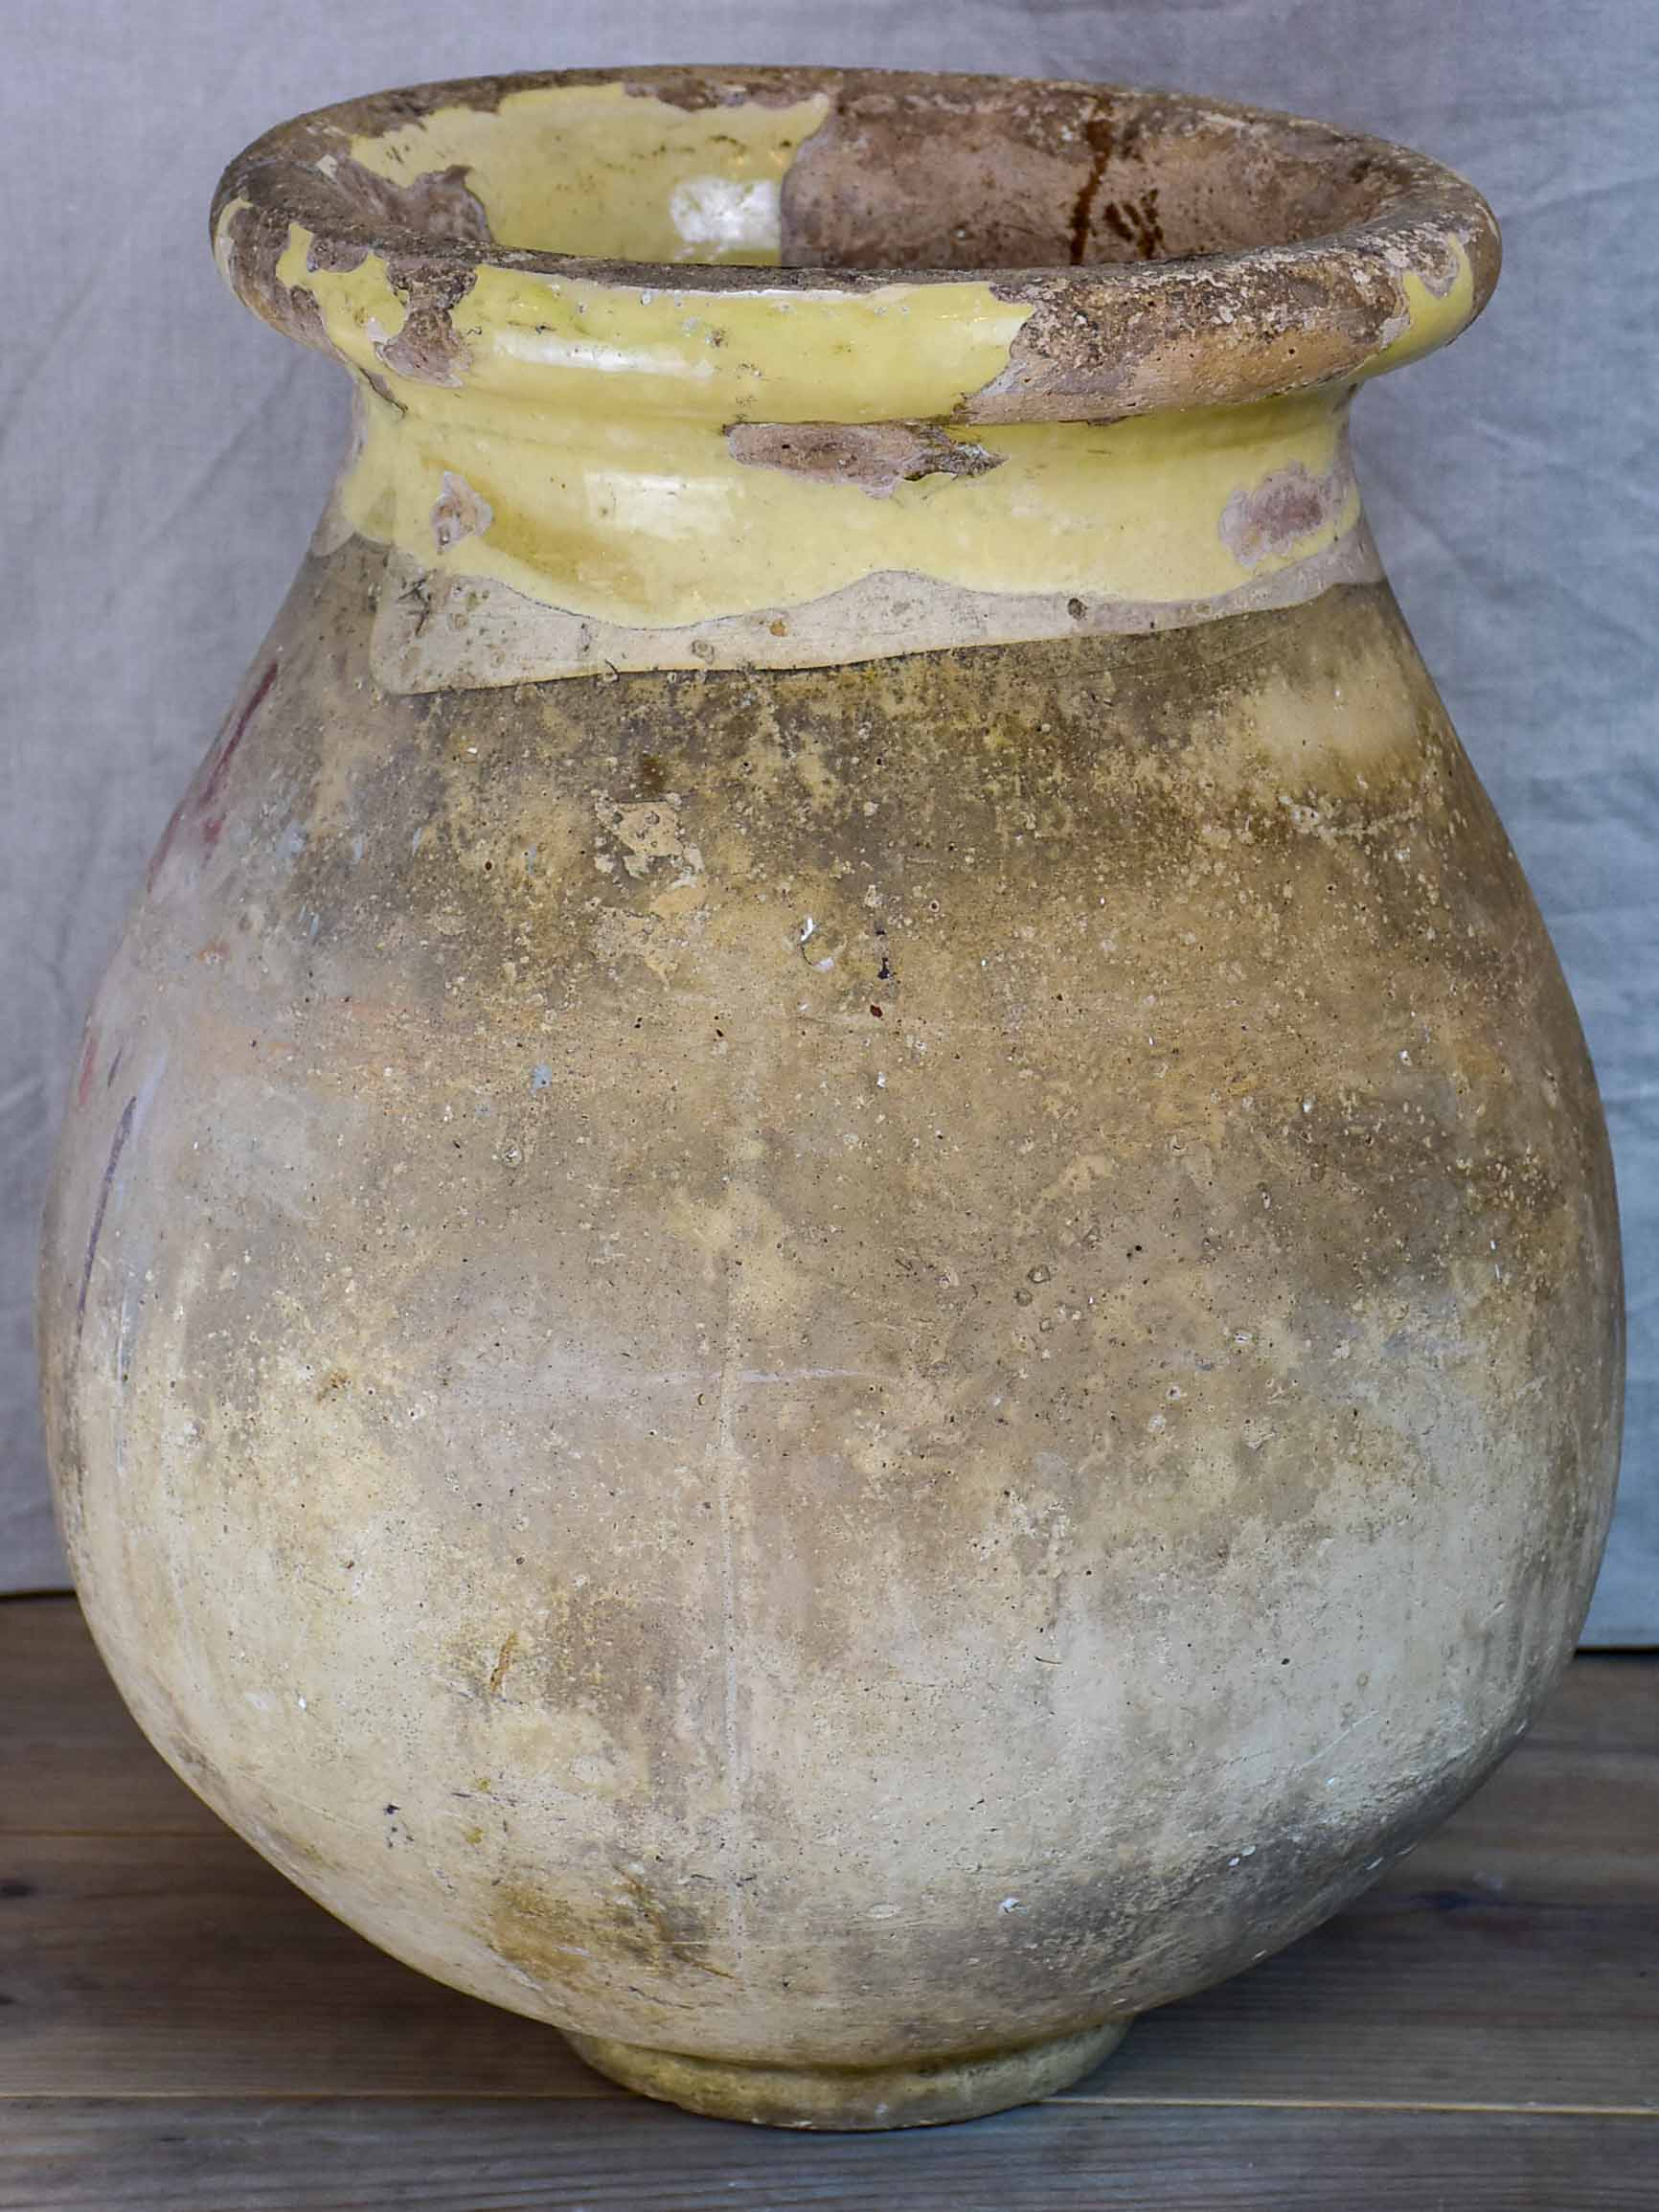 Late 19th Century French Biot oil jar - petite